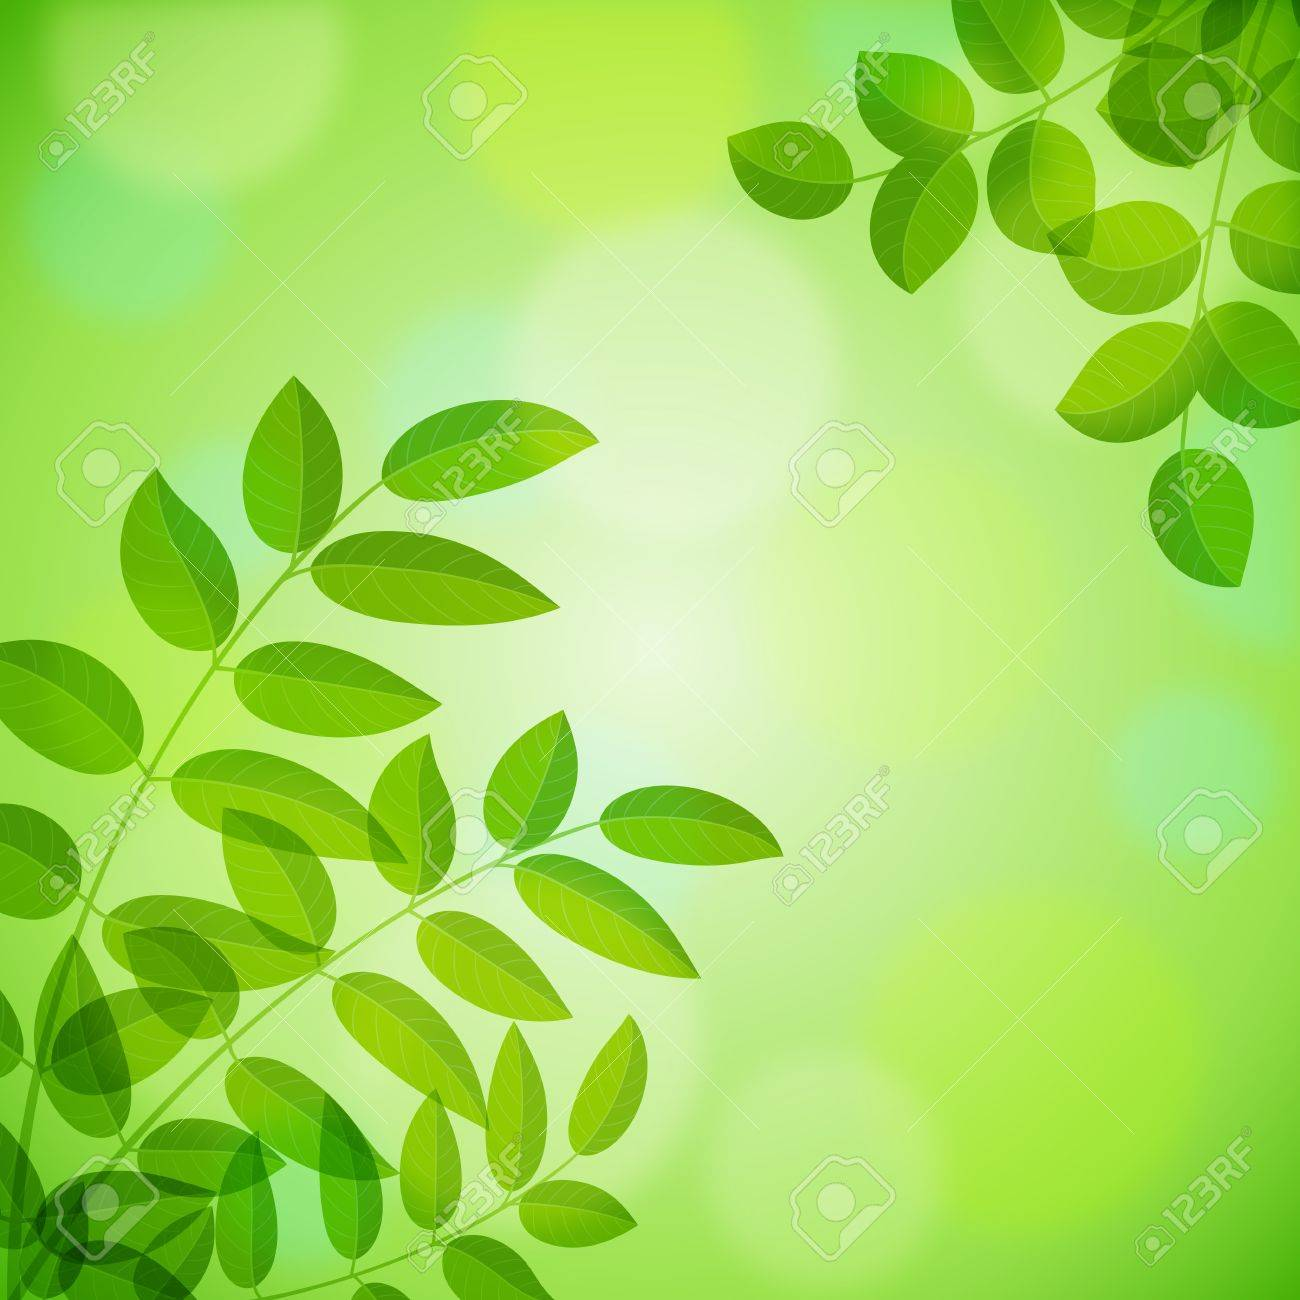 Summer Background with foliage. Vector illustration. Stock Vector - 17738842